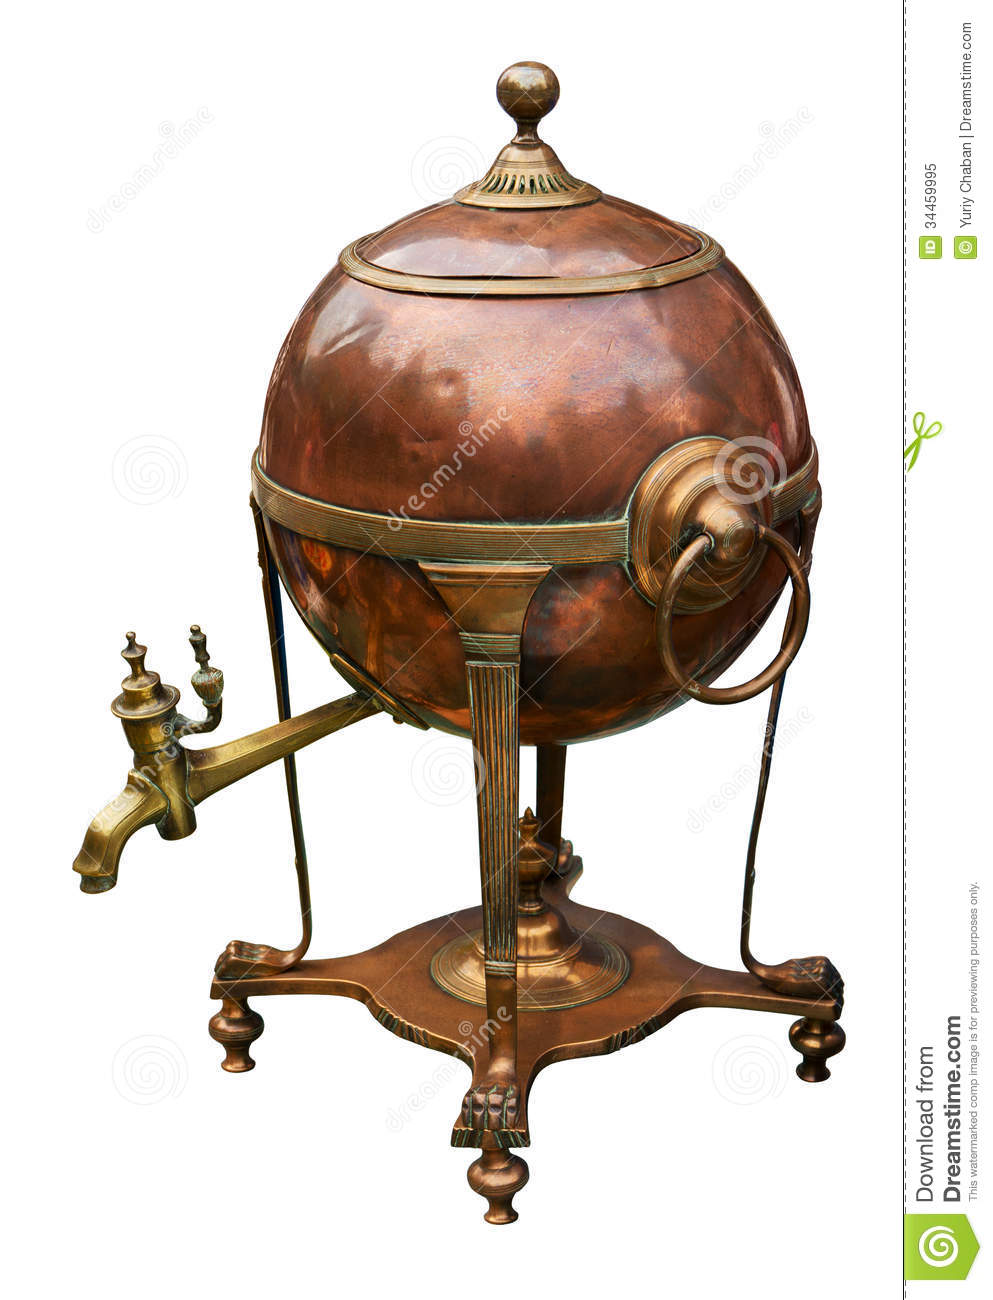 Old Brass Boiler Royalty Free Stock Photo Image 34459995